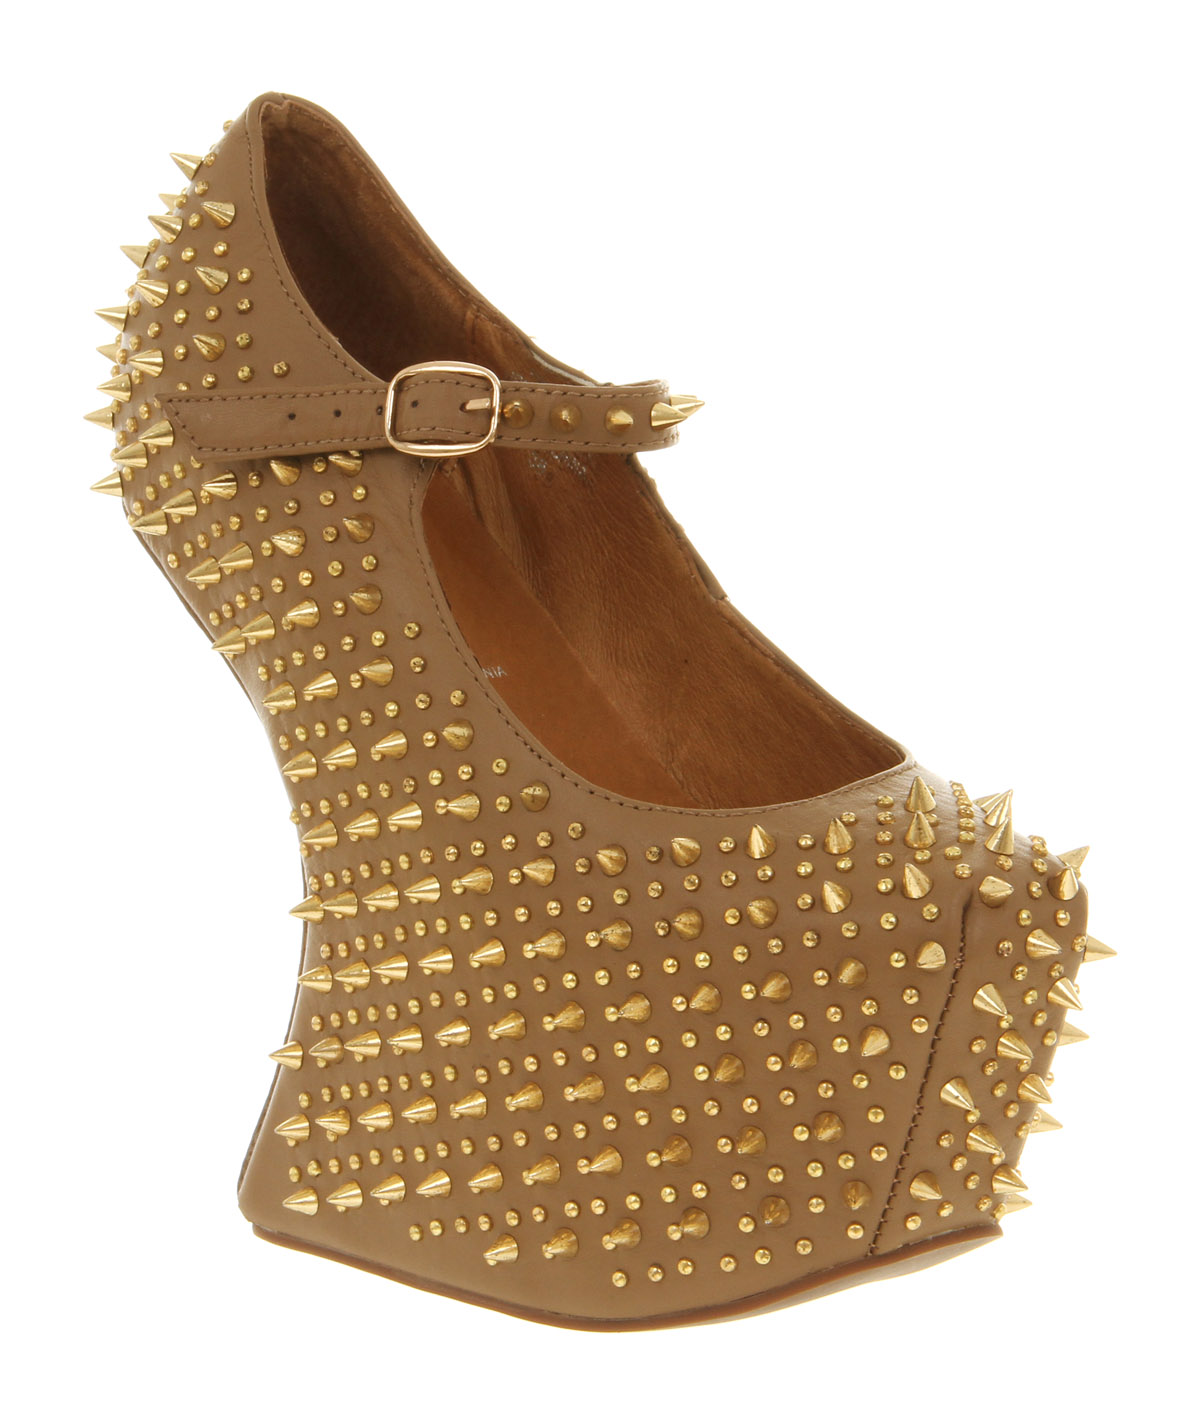 d0c19416a69 Womens Jeffrey Campbell Prickly Wedge Taupe Leather Gold Spike Heels ...